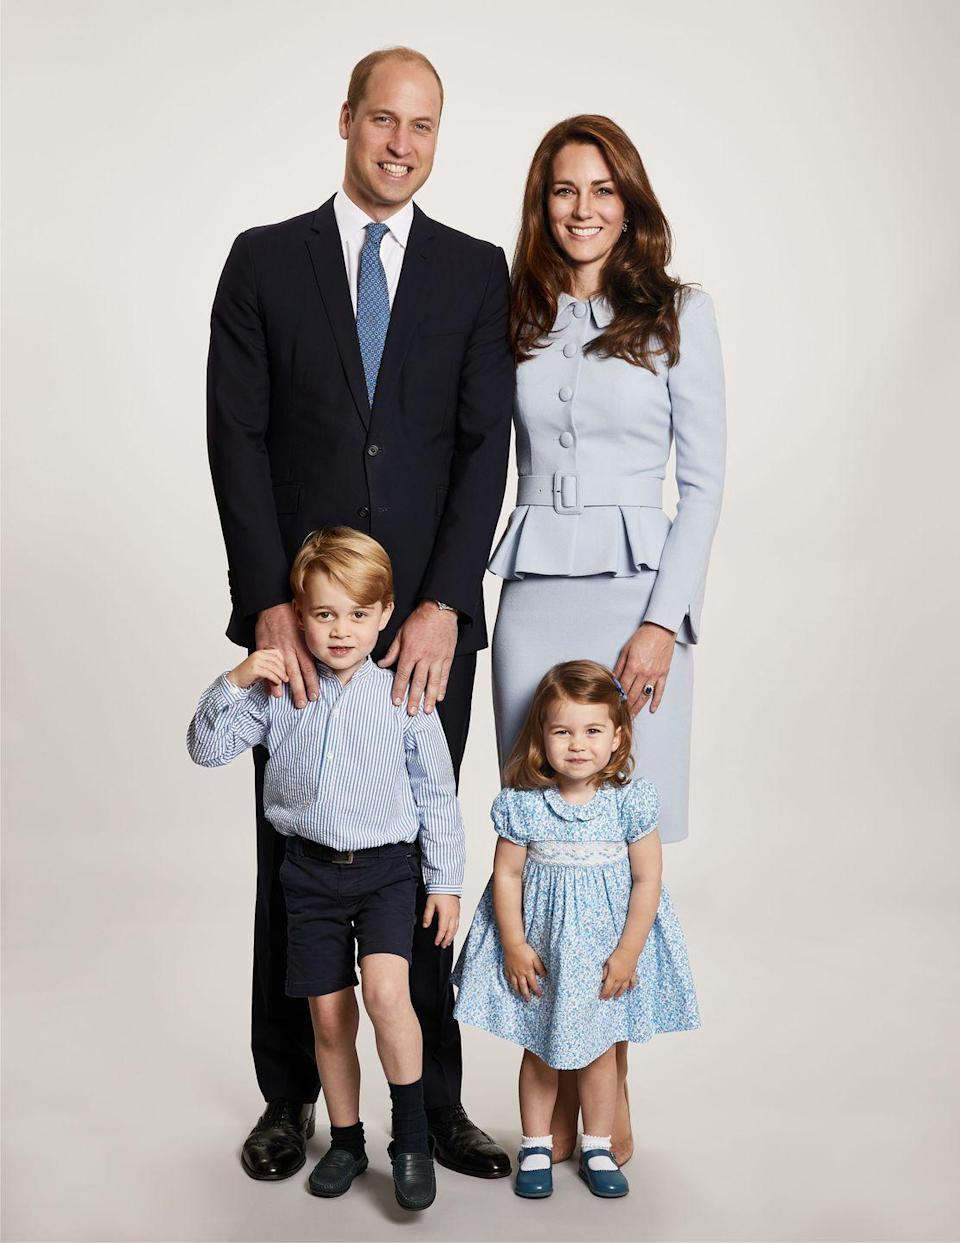 """<p>Will and Kate pose with George and Charlotte in a new portrait taken by <a href=""""https://www.townandcountrymag.com/society/tradition/a14453817/royal-family-christmas-card-2017/"""" rel=""""nofollow noopener"""" target=""""_blank"""" data-ylk=""""slk:photographer Chris Jackson"""" class=""""link rapid-noclick-resp"""">photographer Chris Jackson</a> for their 2017 holiday card.</p>"""